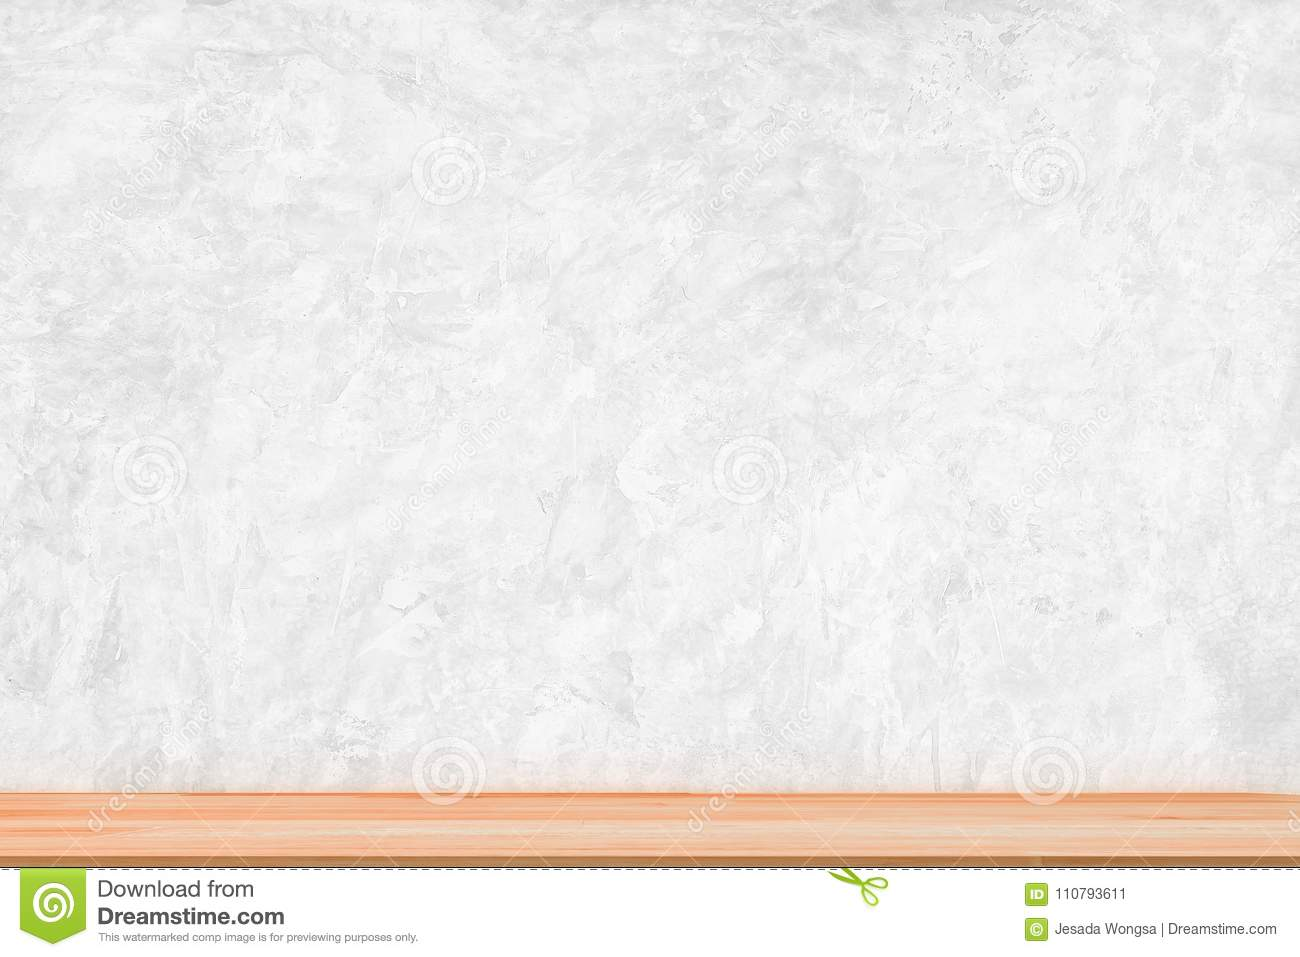 Wooden Table Top On Grunge Concrete Wall Background Template Display